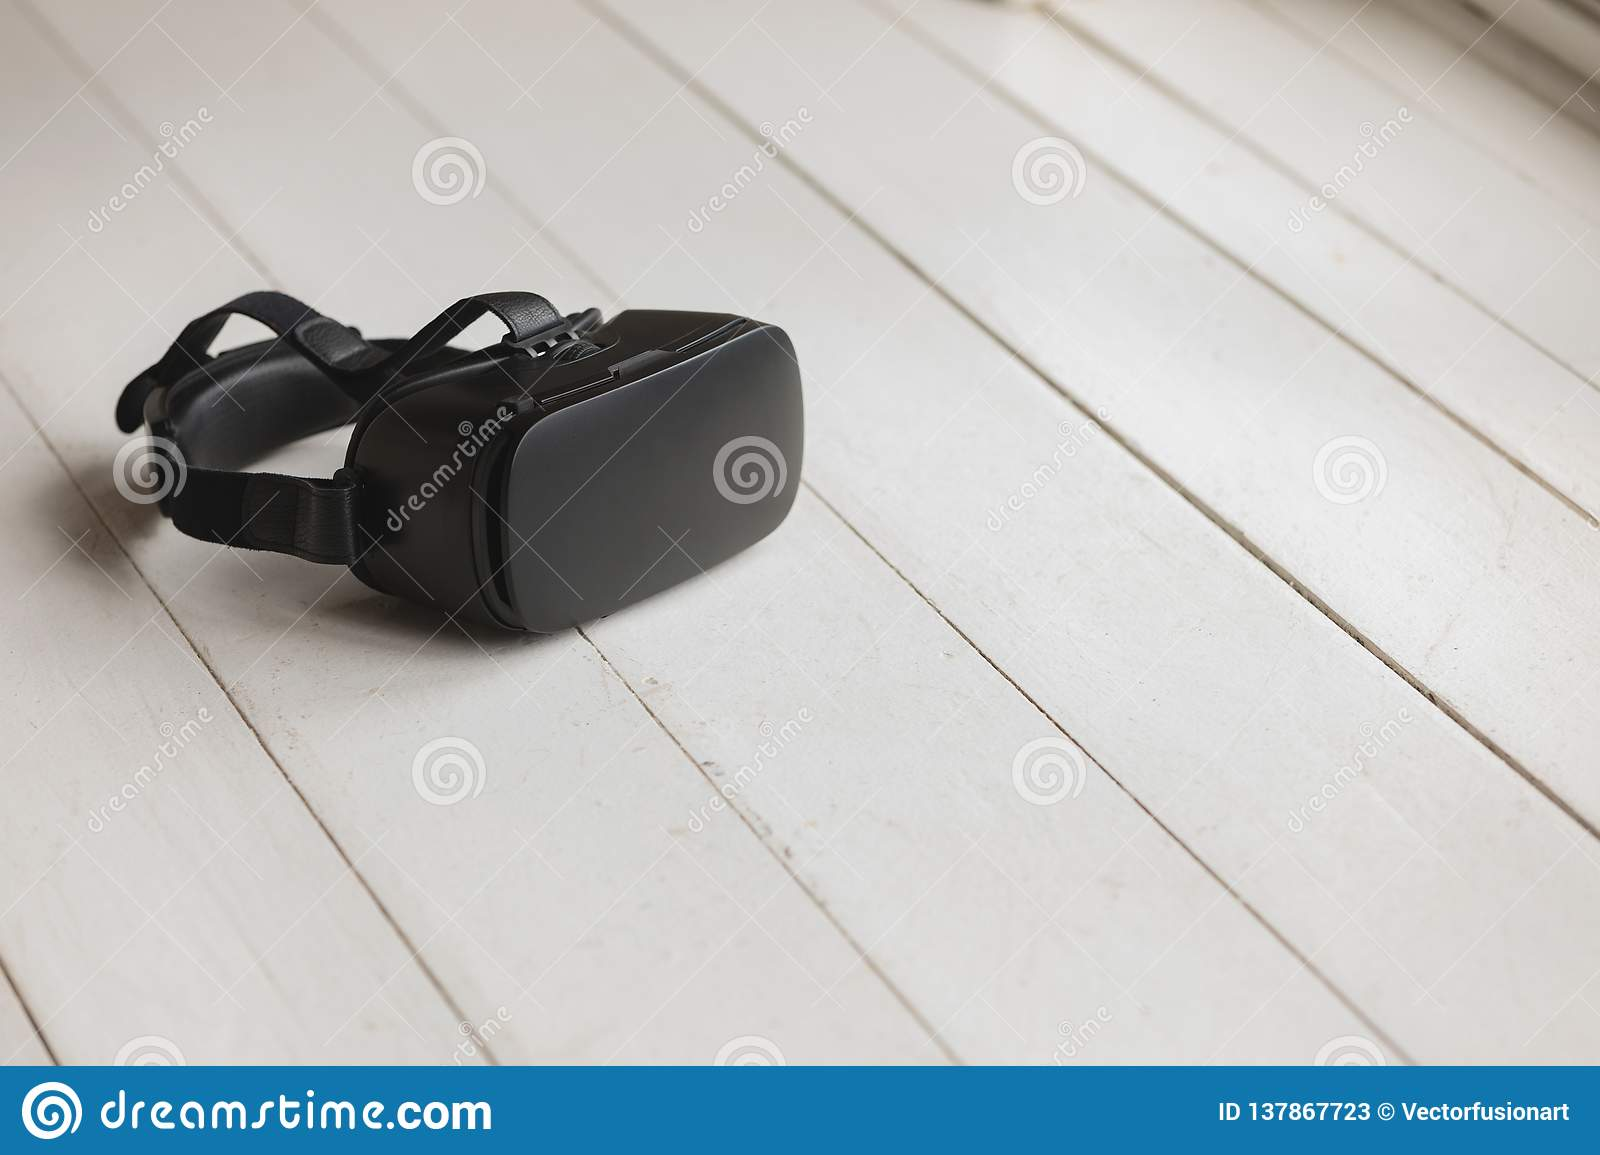 Virtual reality headset placed on the floor